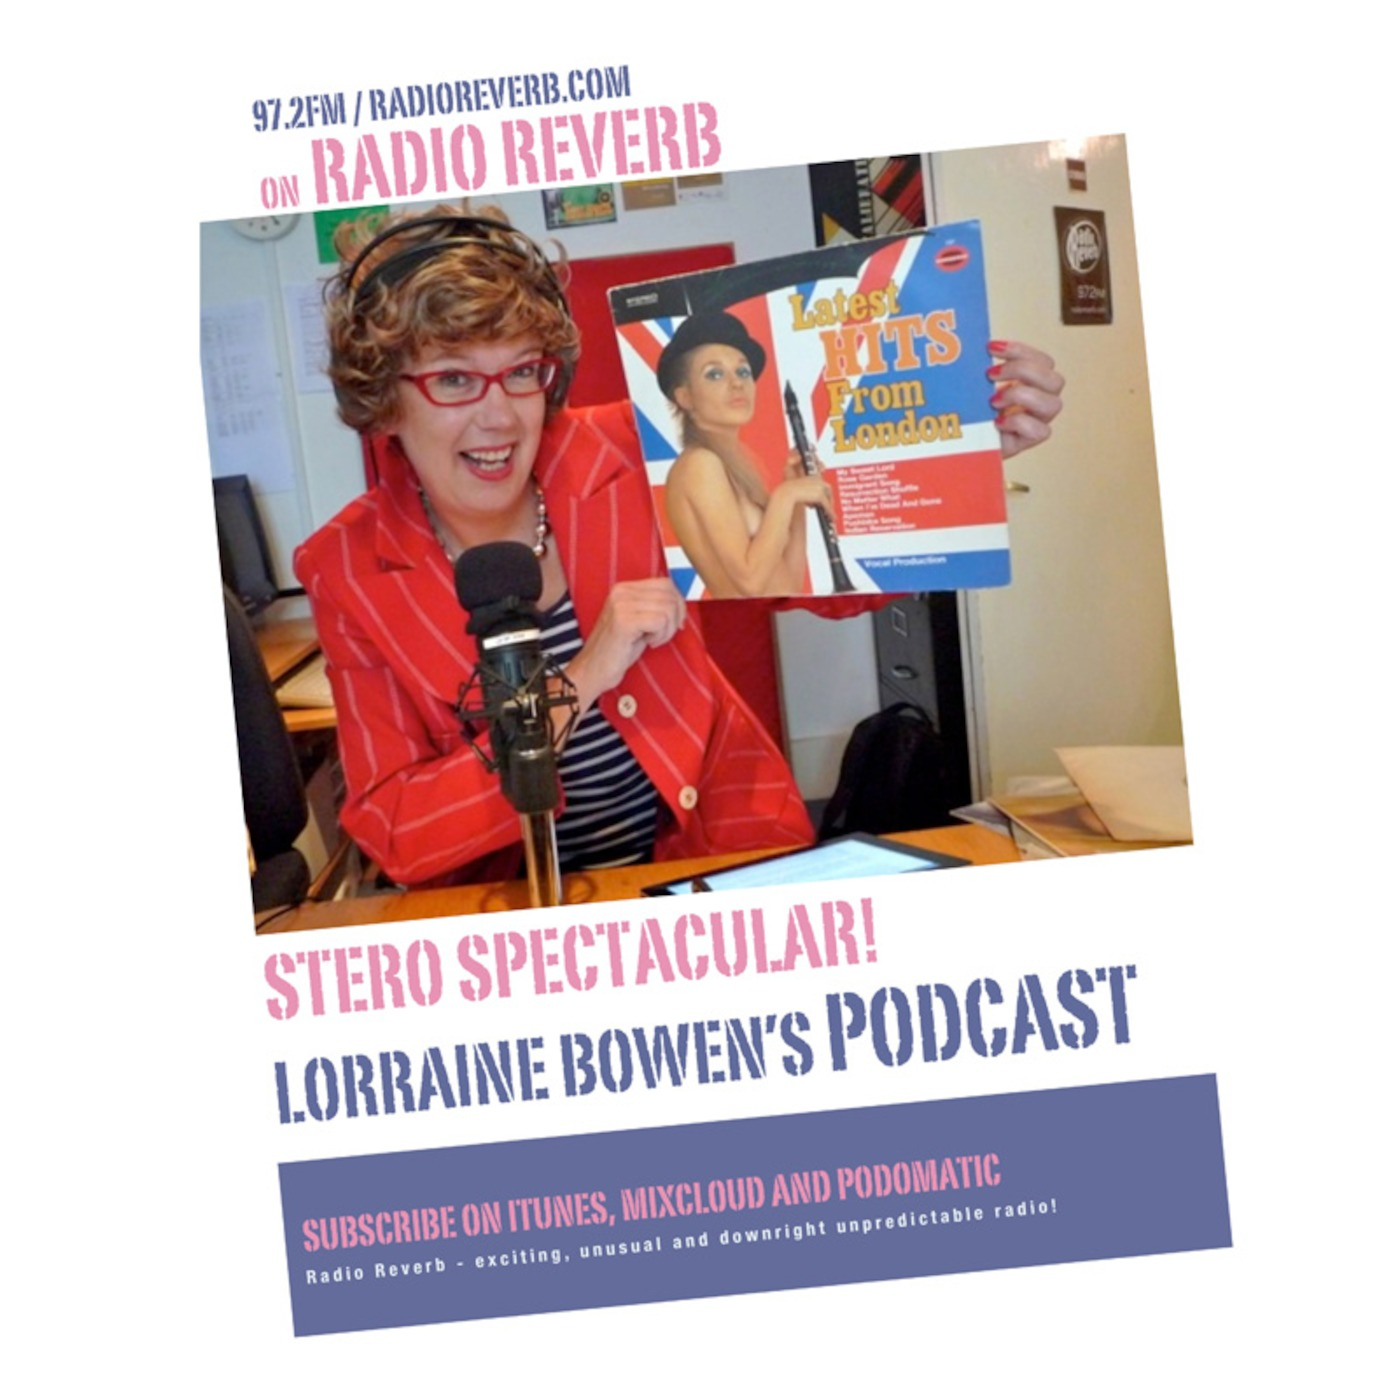 Lorraine Bowen's Stereo Spectacular